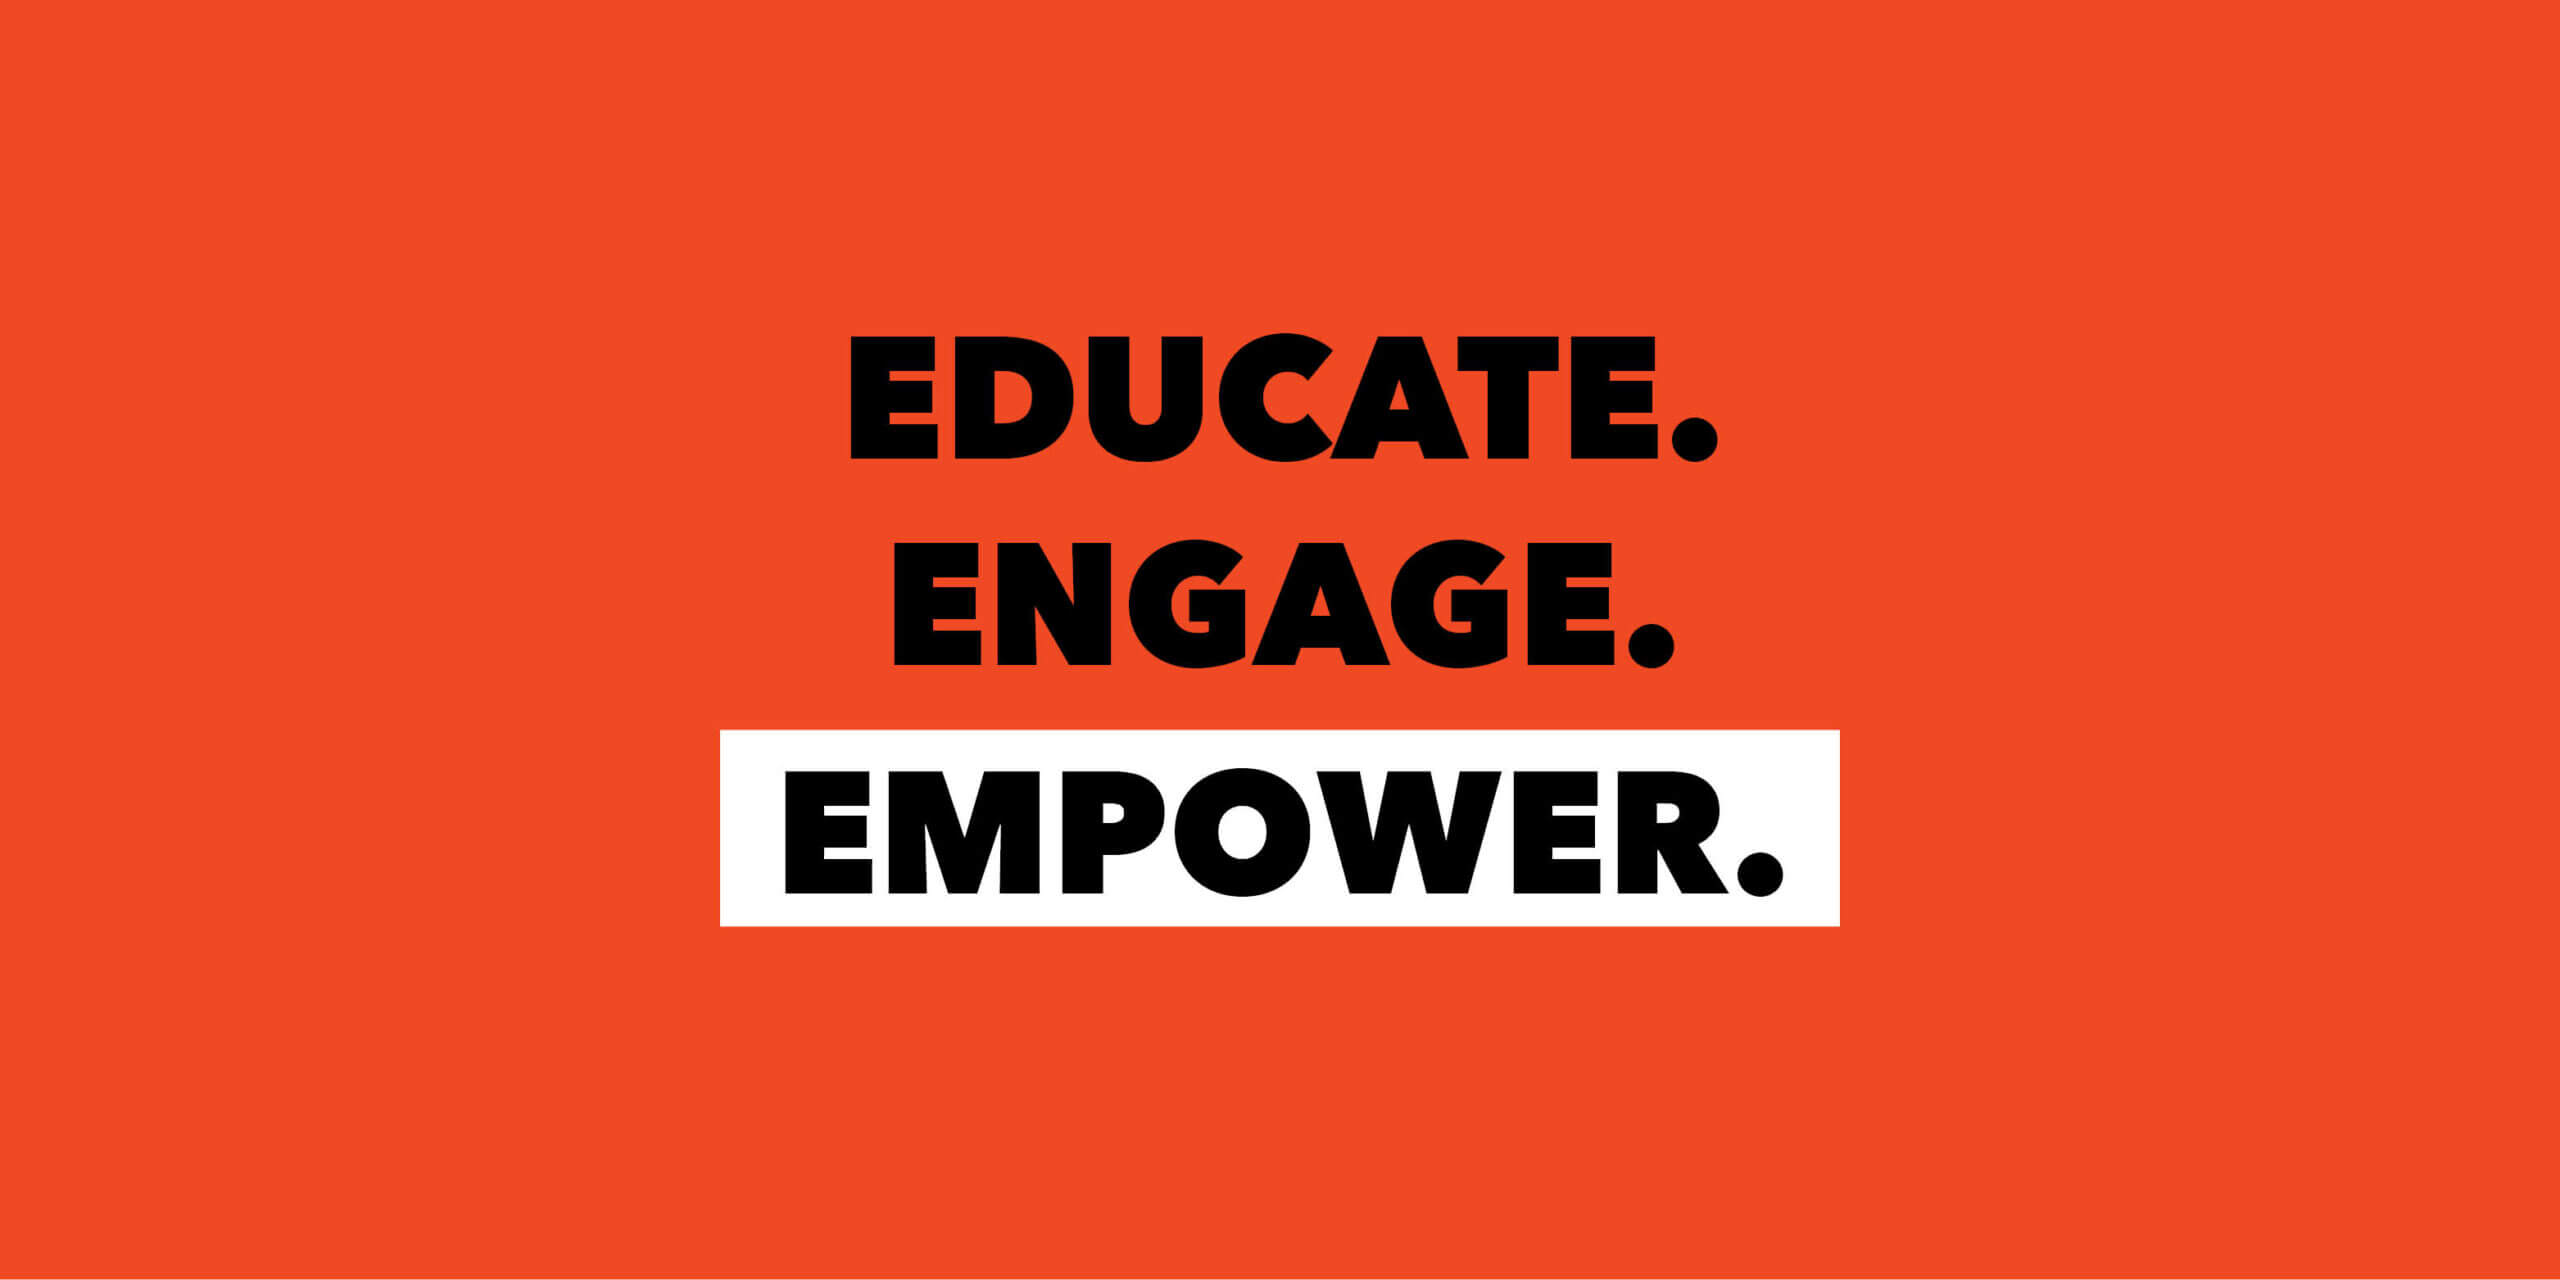 """The words """"EDUCATE. ENGAGE. EMPOWER."""" in black text on orange background"""